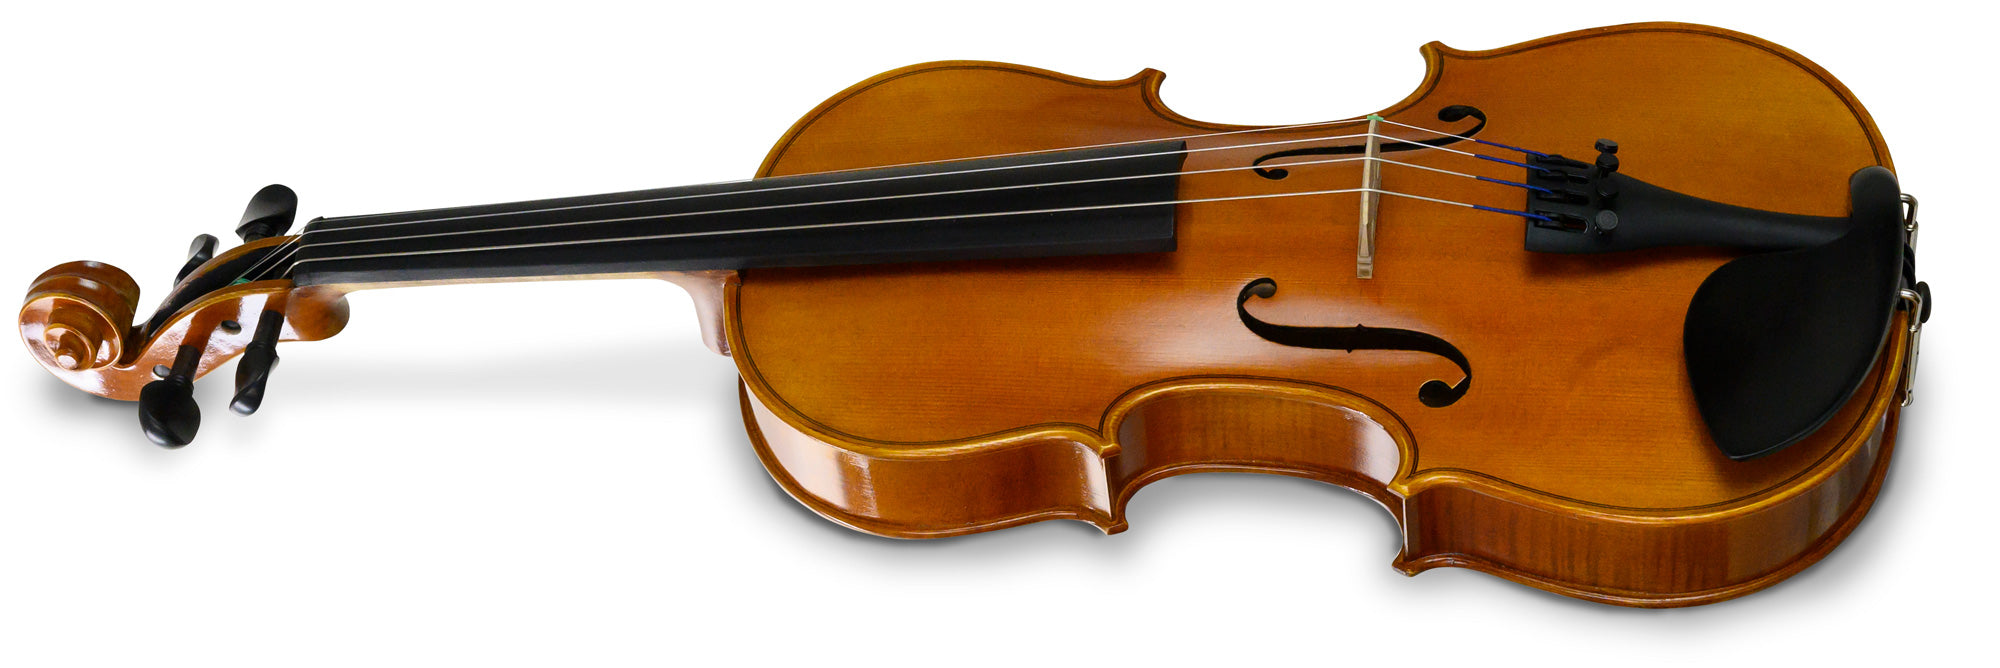 The Louis Carpini is the best violin under $500, guaranteed.